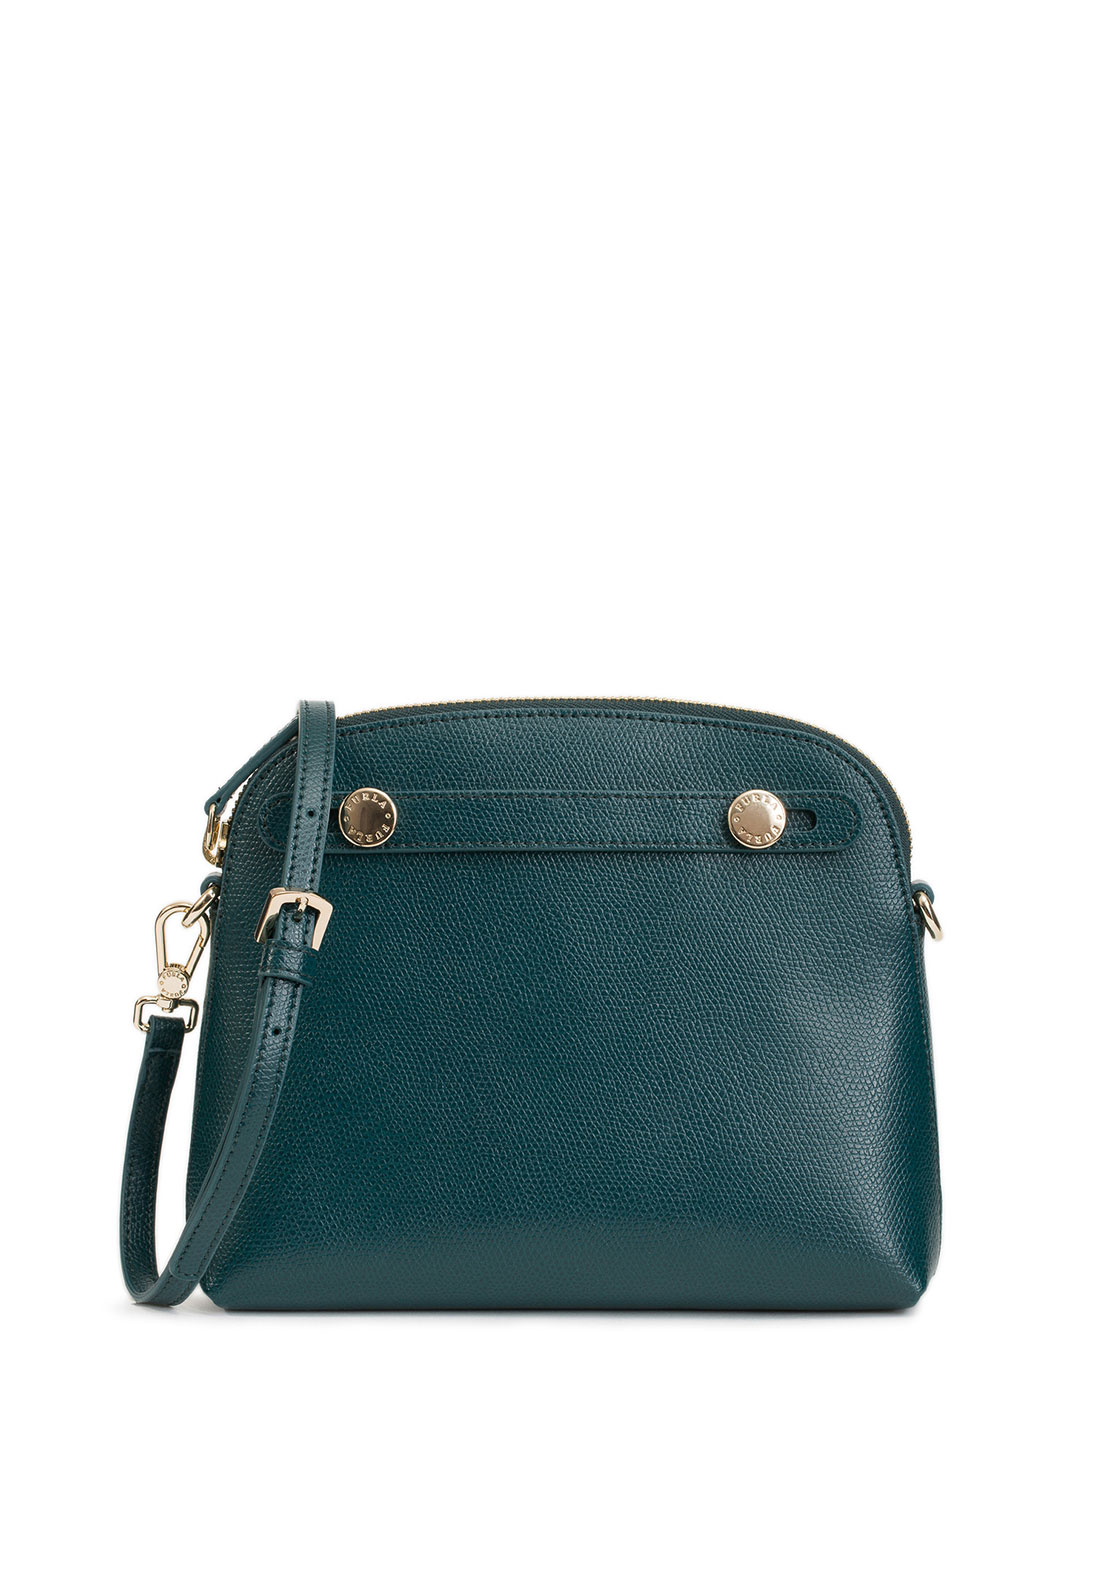 Furla Piper Crossbody Mini, Teal Green